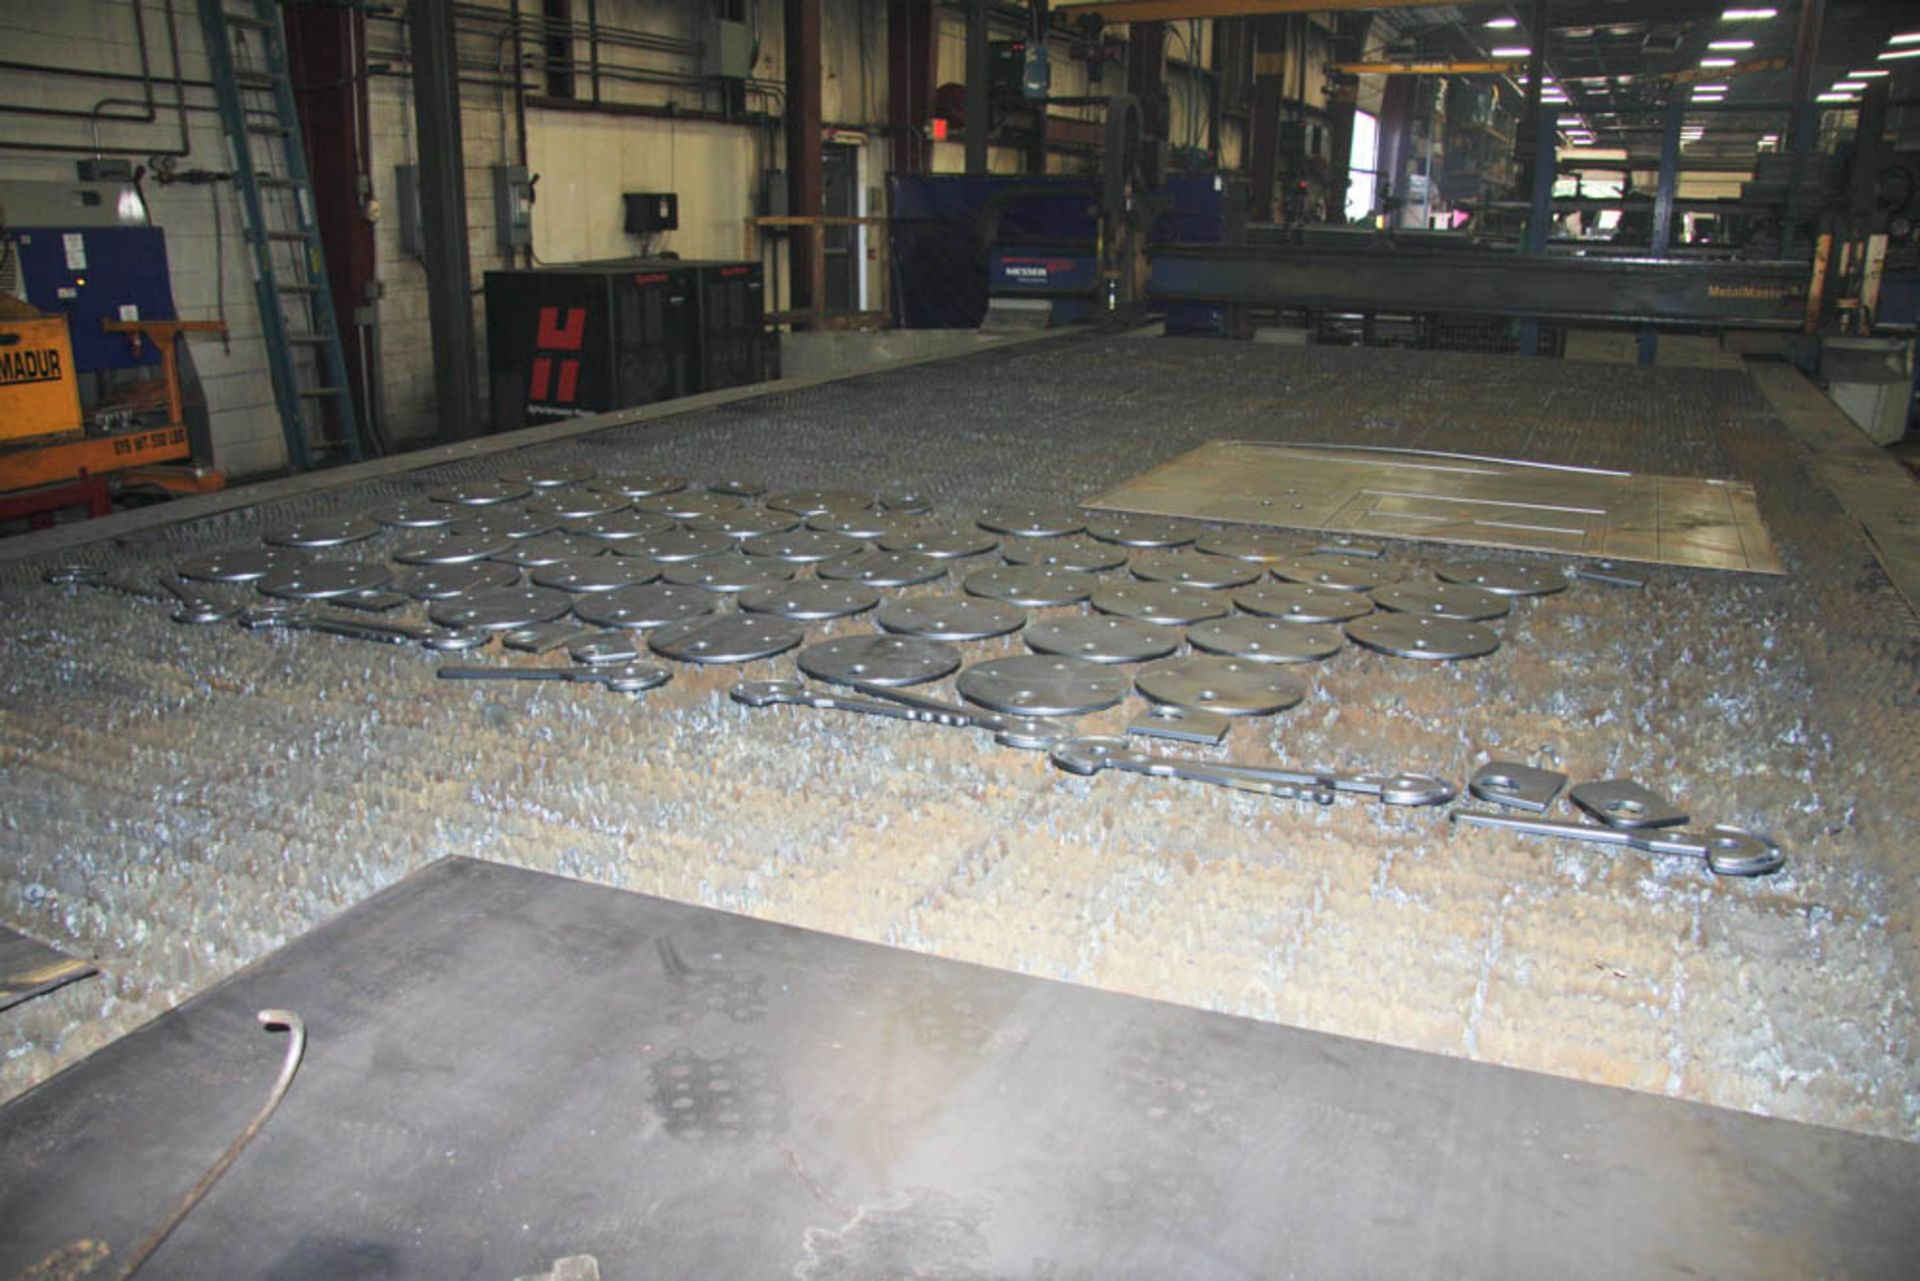 """2015 MESSER MDL. MMEXCEL HI-DEF CNC PLASMA CUTTING TABLE, [2] HEADS, 140"""" X 324"""" OVERALL TABLE SIZE, - Image 19 of 20"""